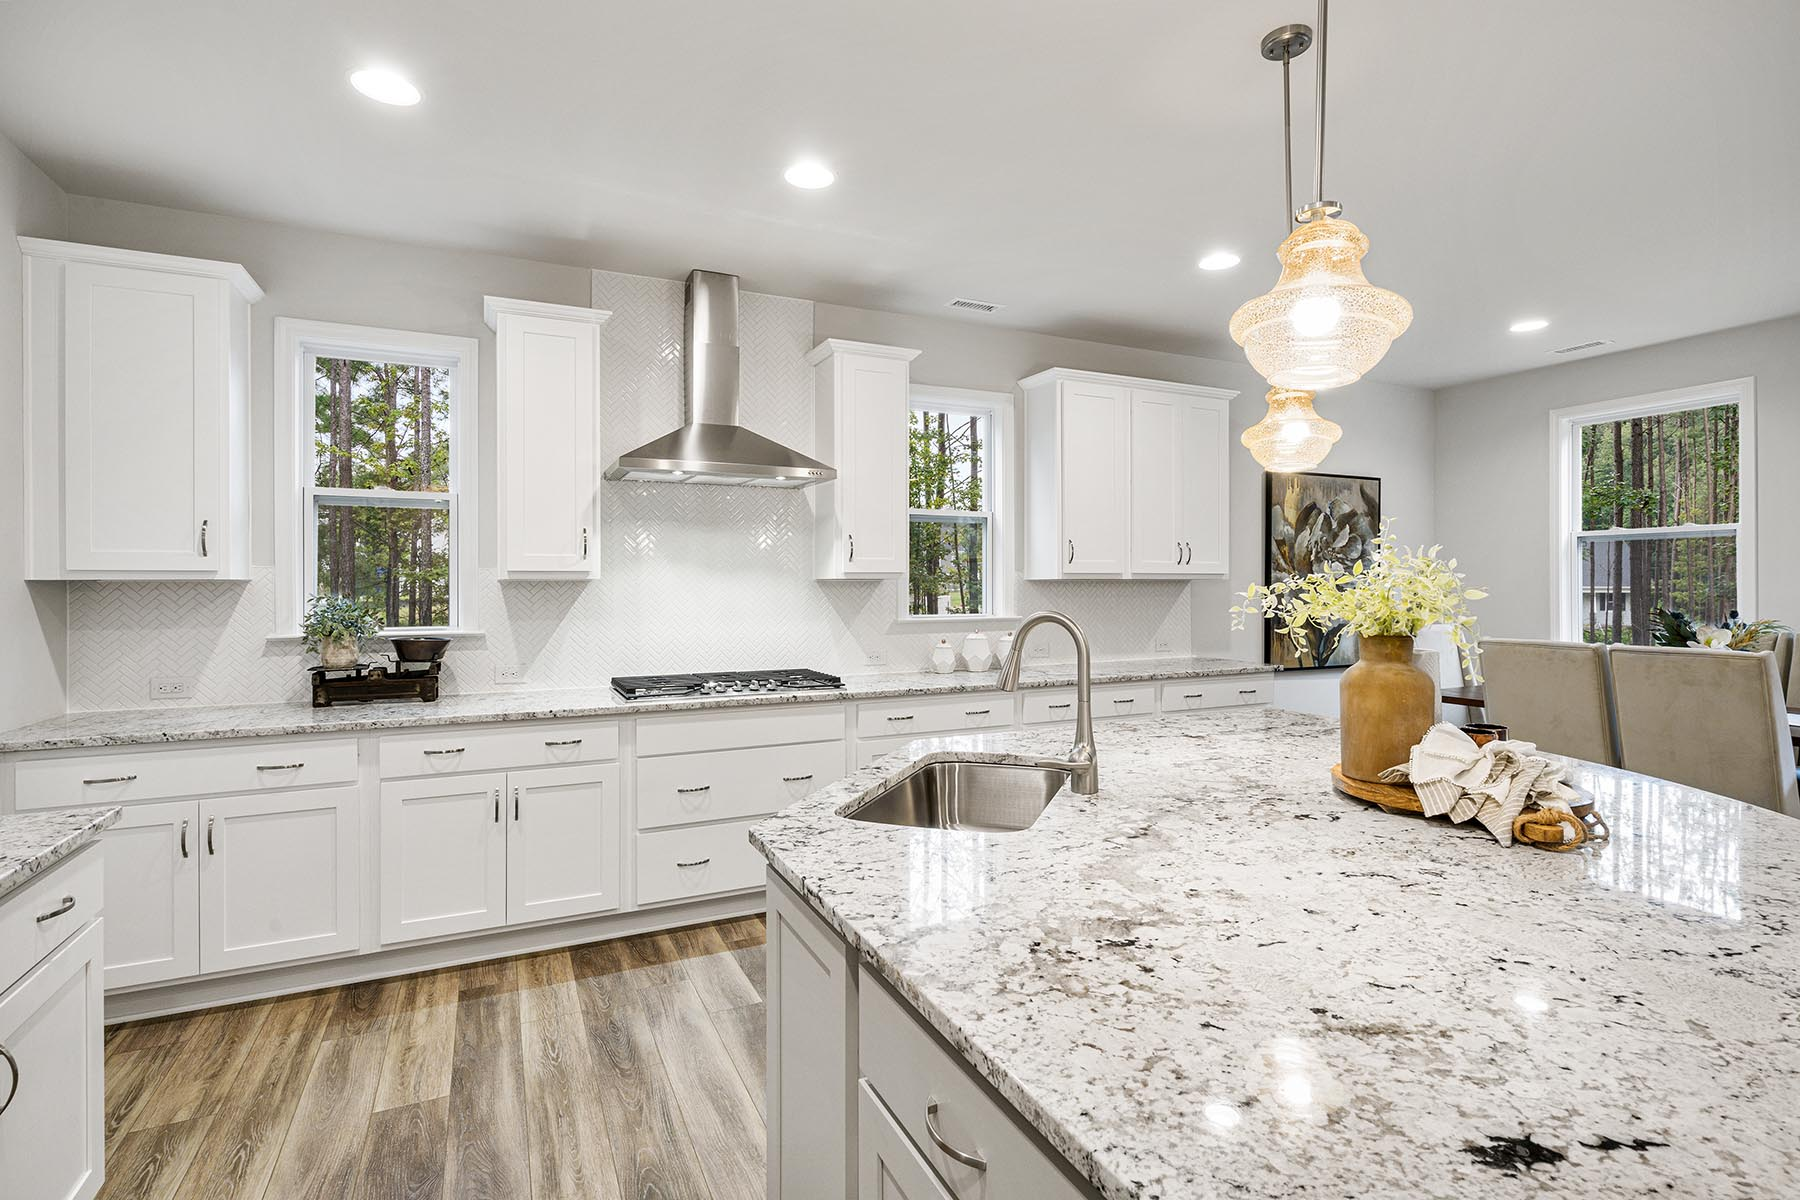 Kendrick Plan Kitchen at Fairview Park in Cary North Carolina by Mattamy Homes